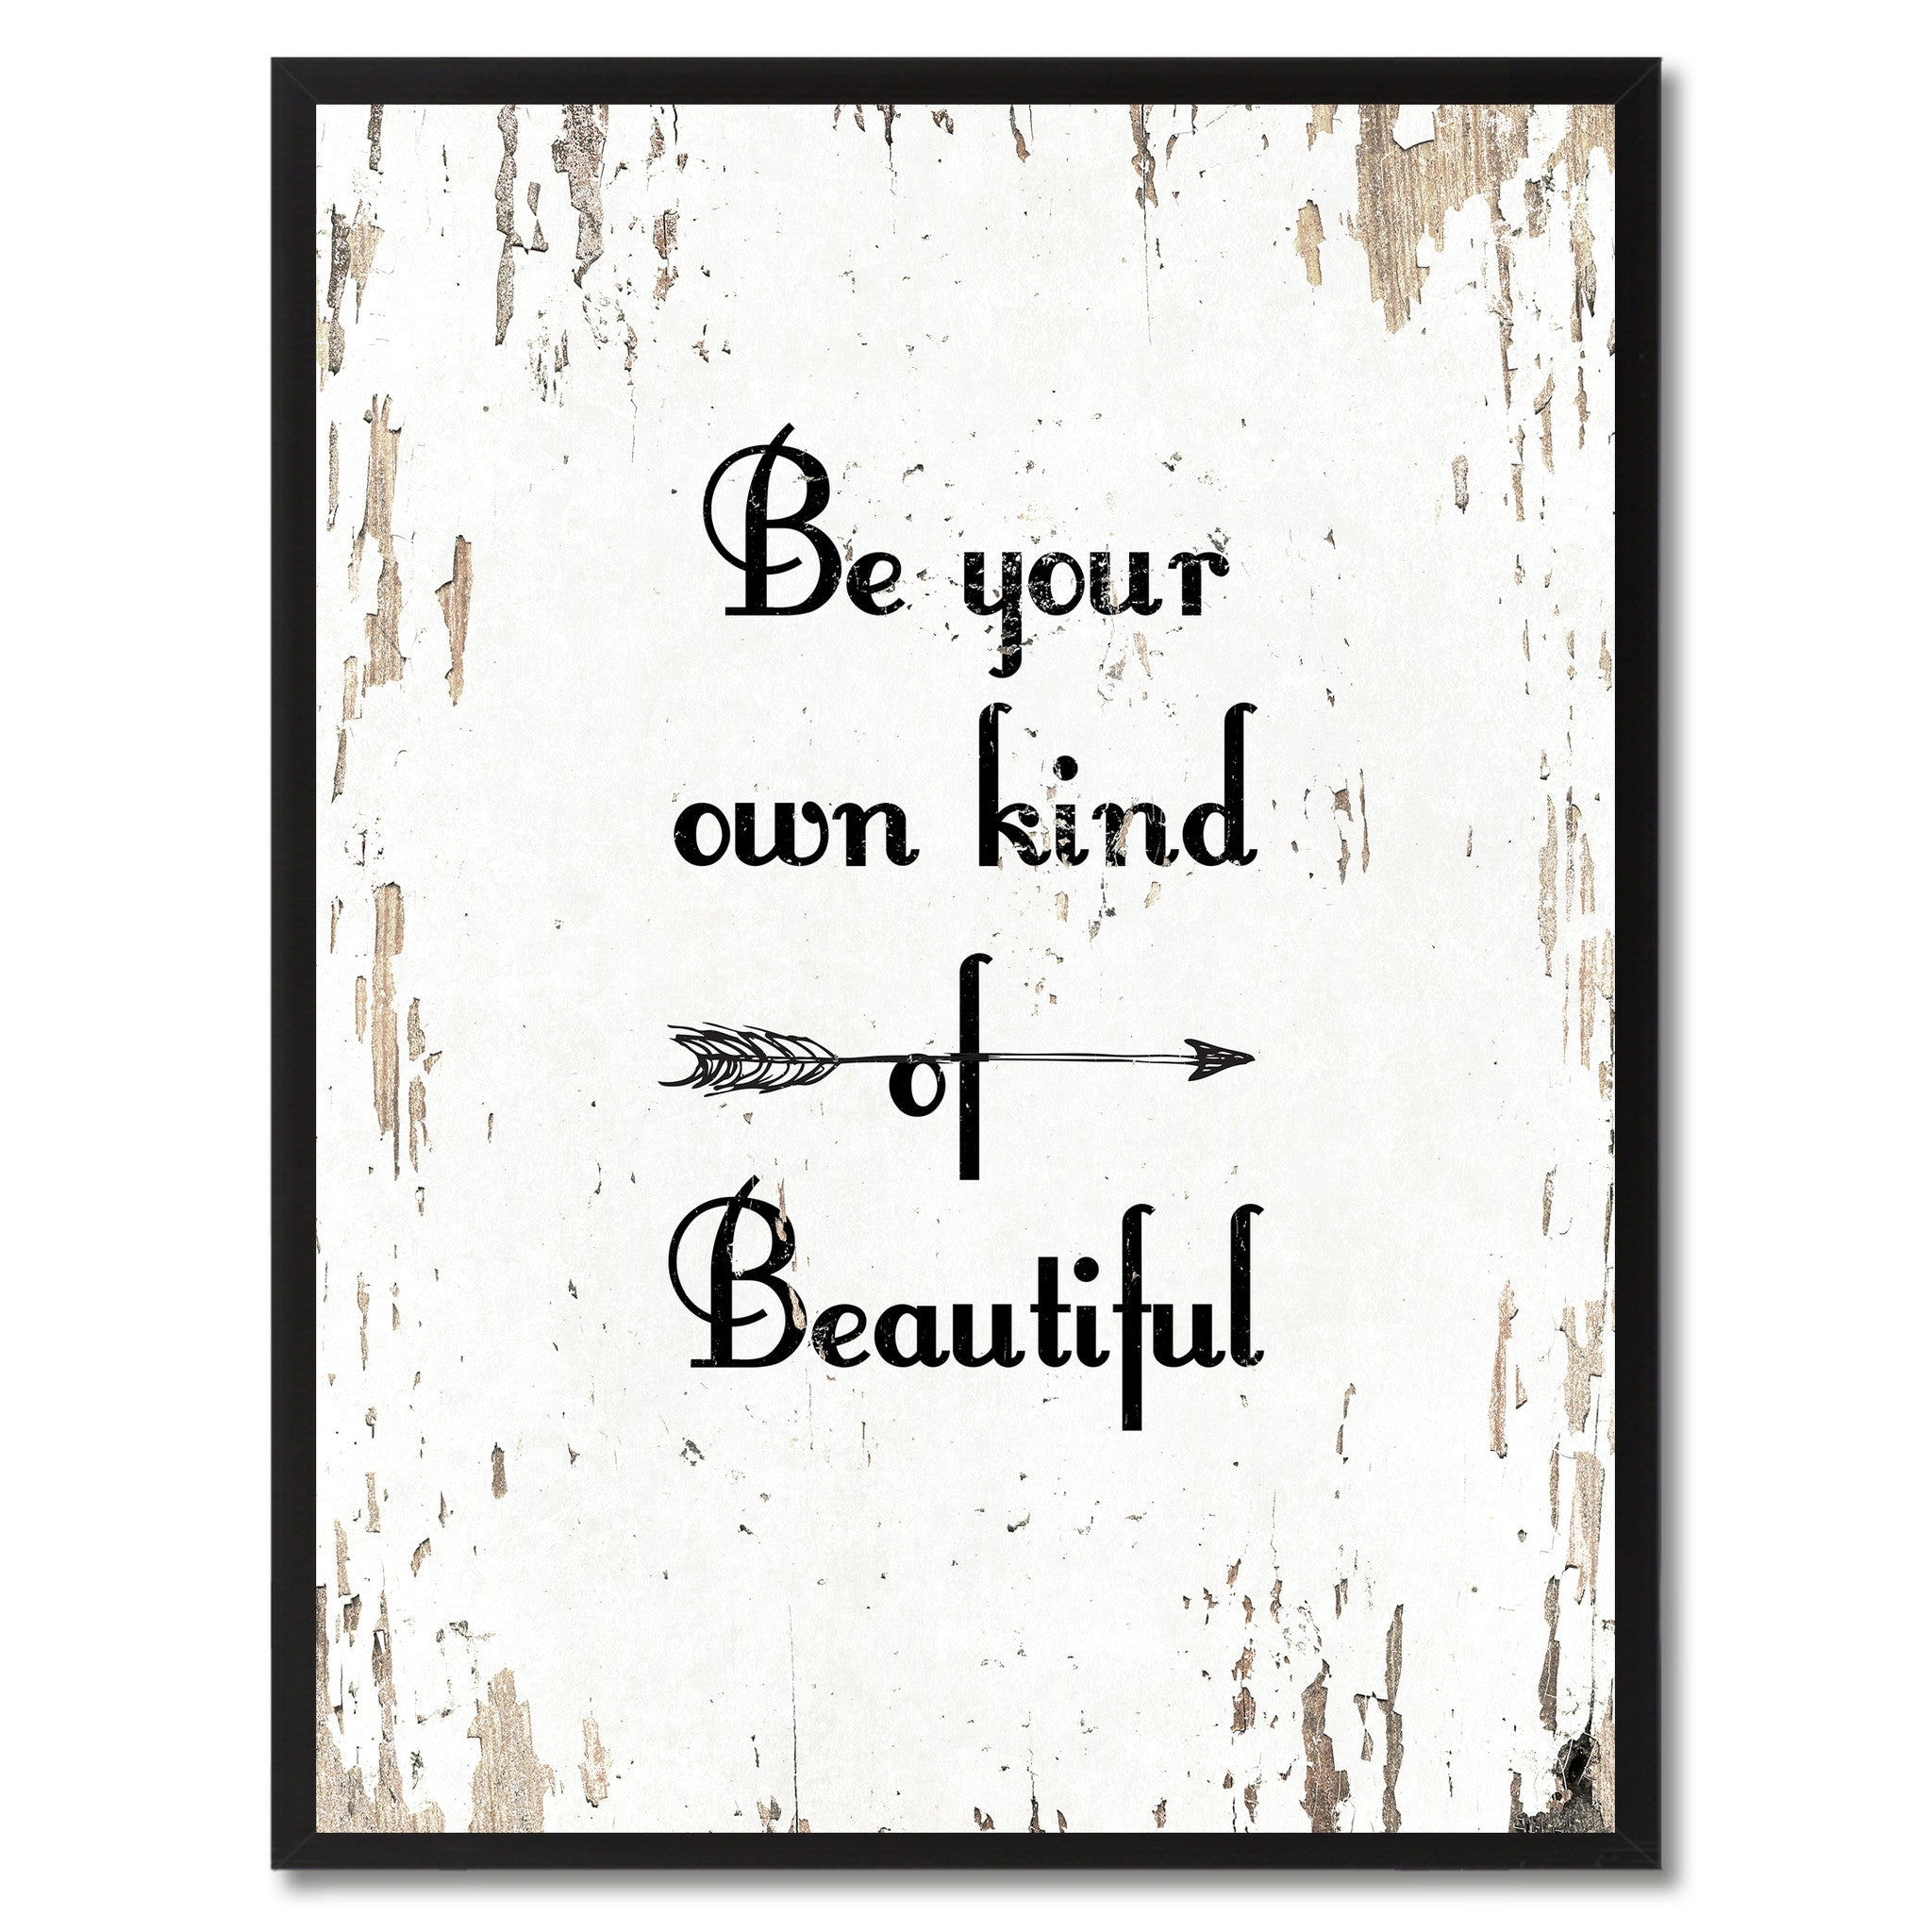 Be Your Own Kind Of Beautiful Saying Motivation Quote Canvas Print, Black Picture Frame Home Decor Wall Art Gifts